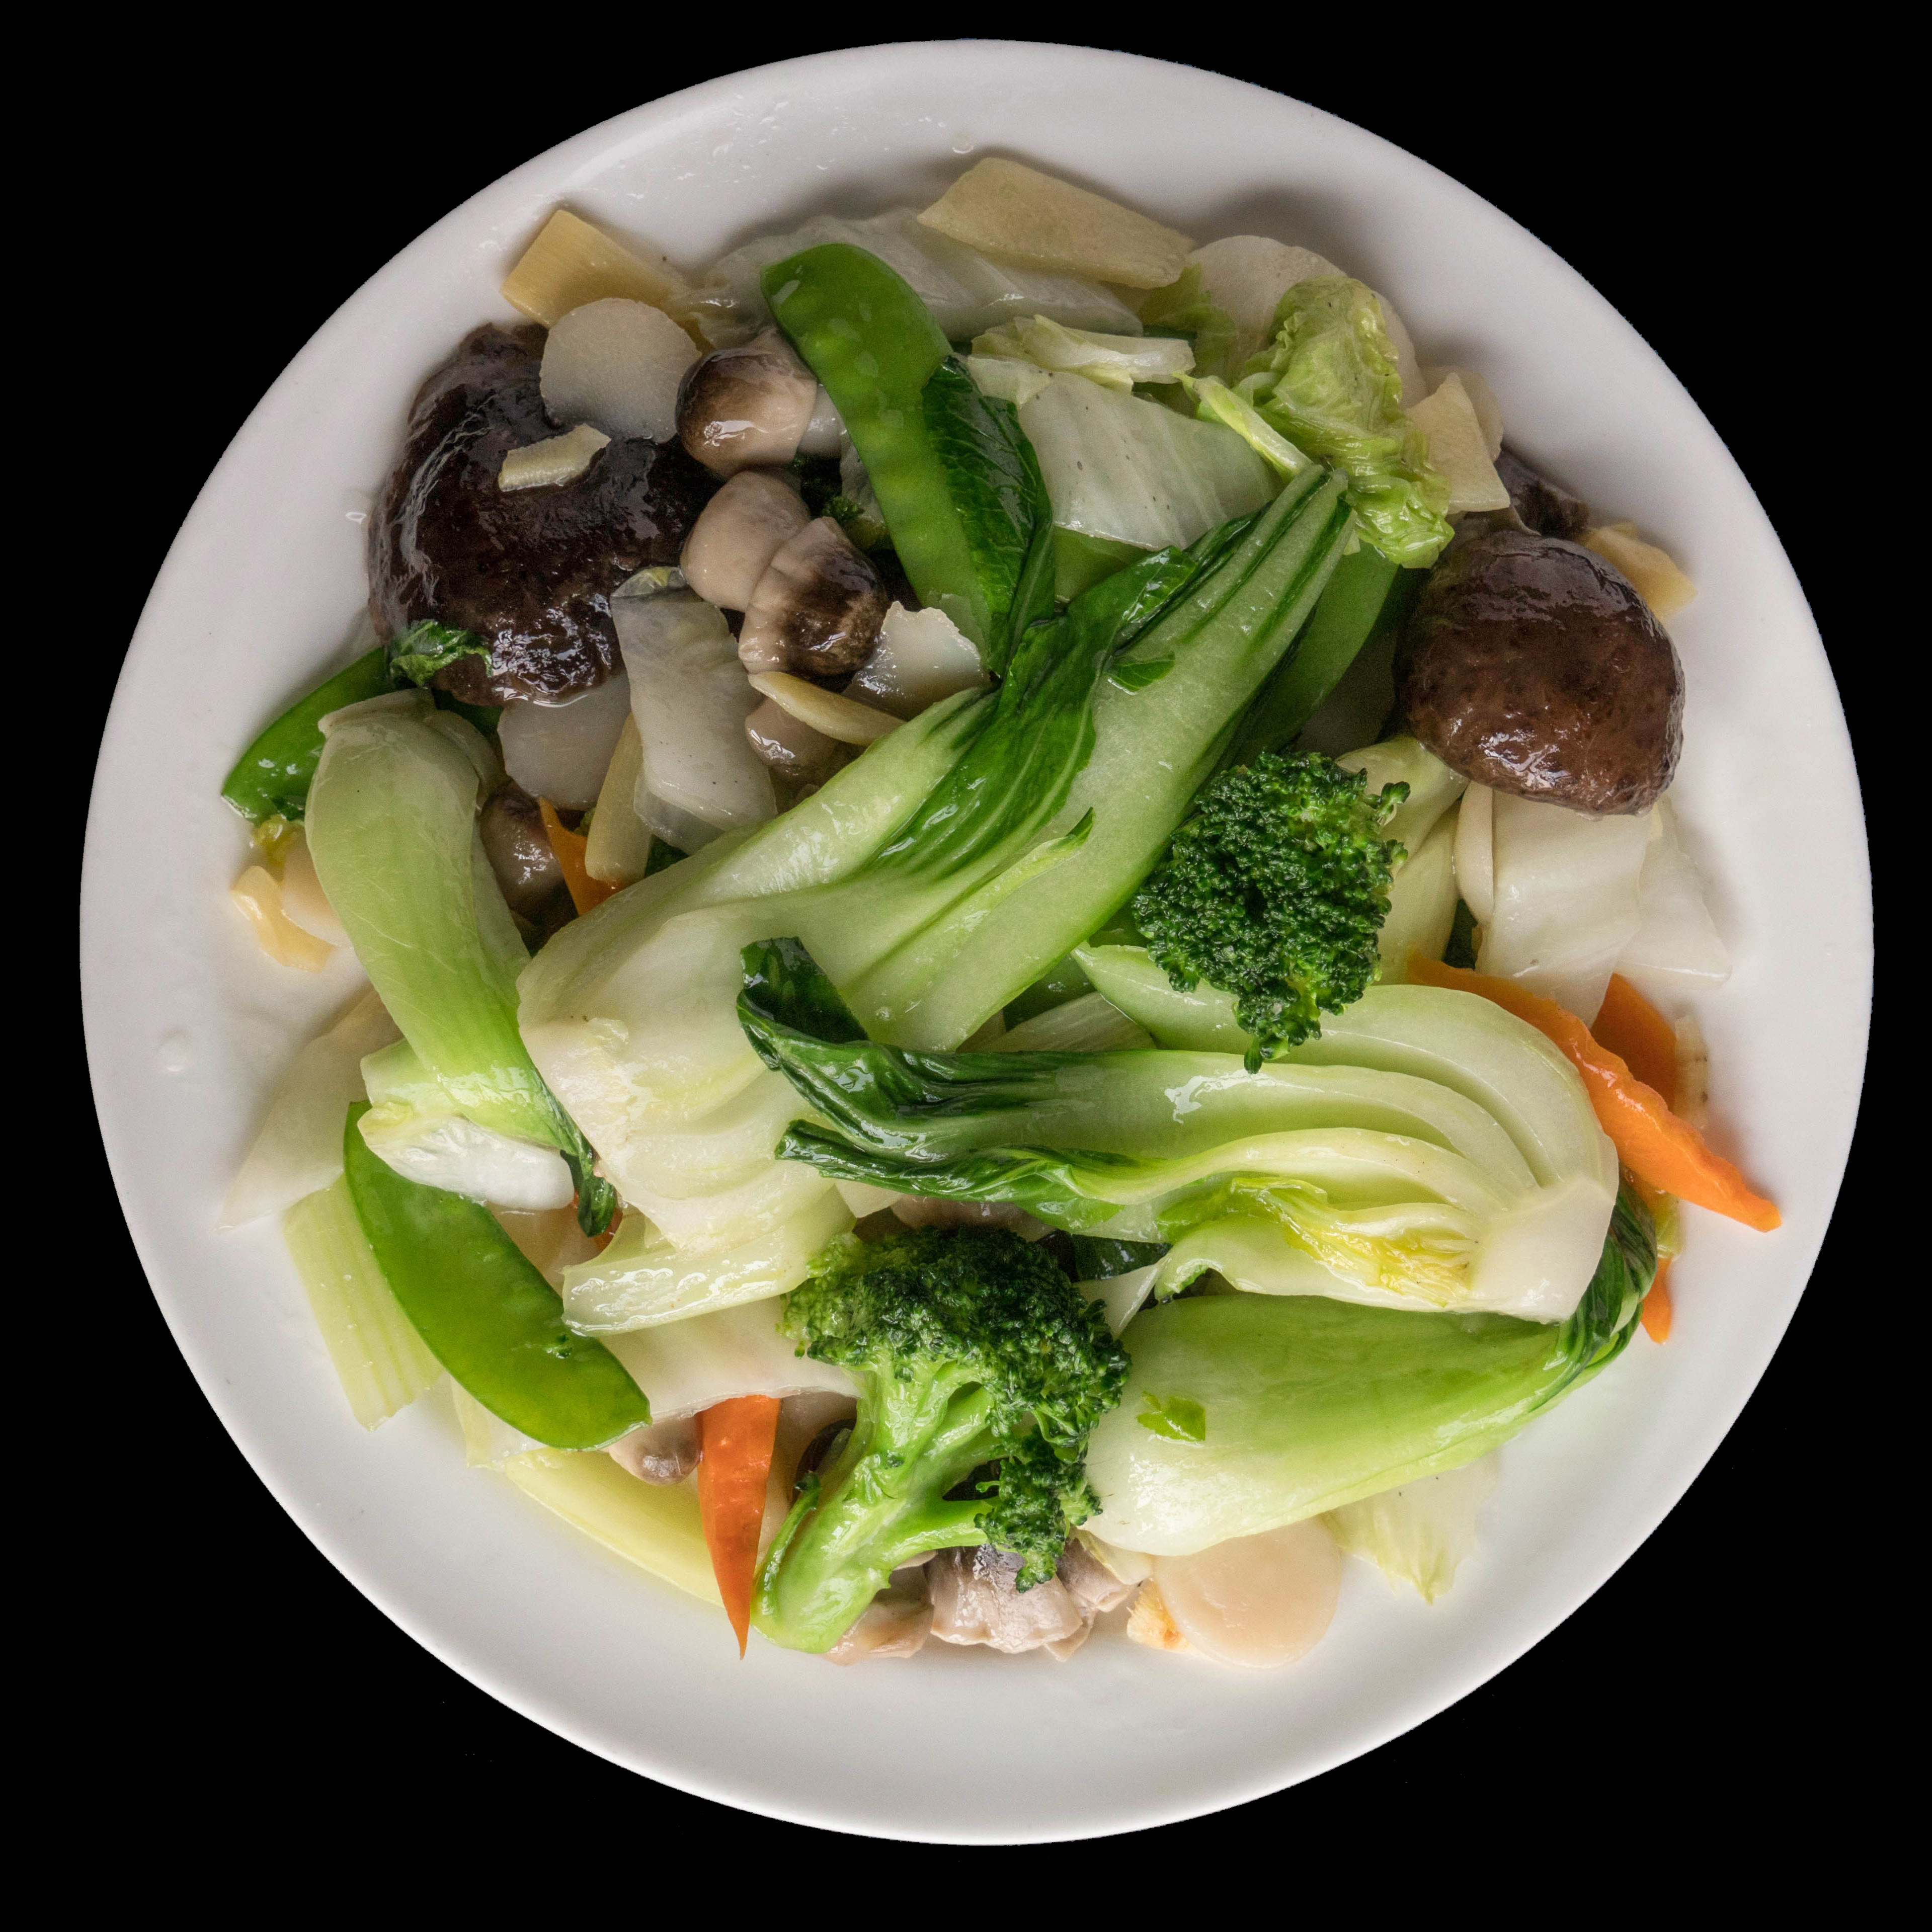 61. 素什锦 Mixed Vegetables Image